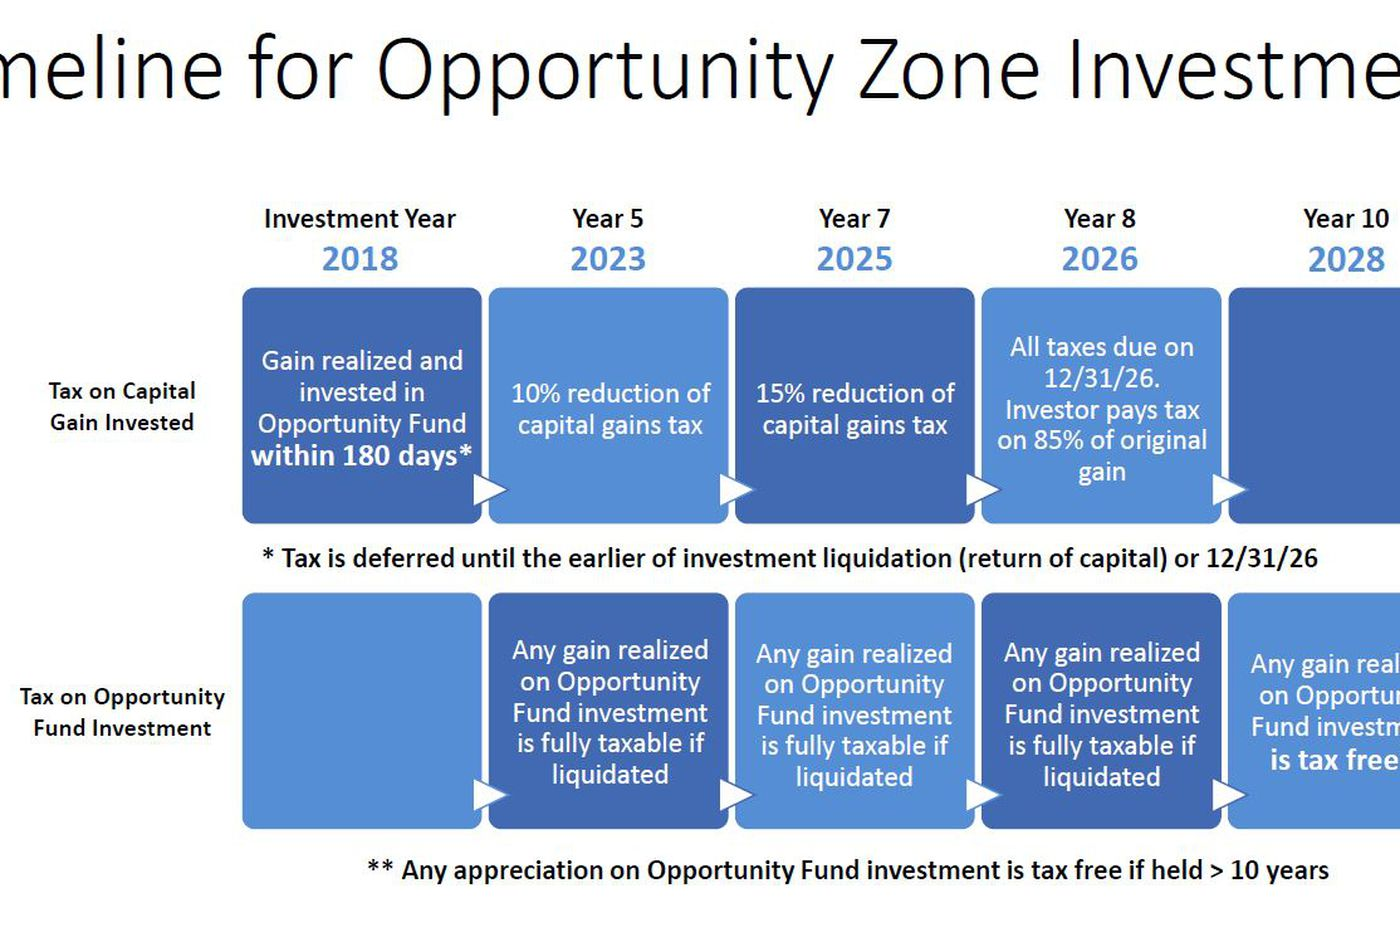 Opportunity zone fund